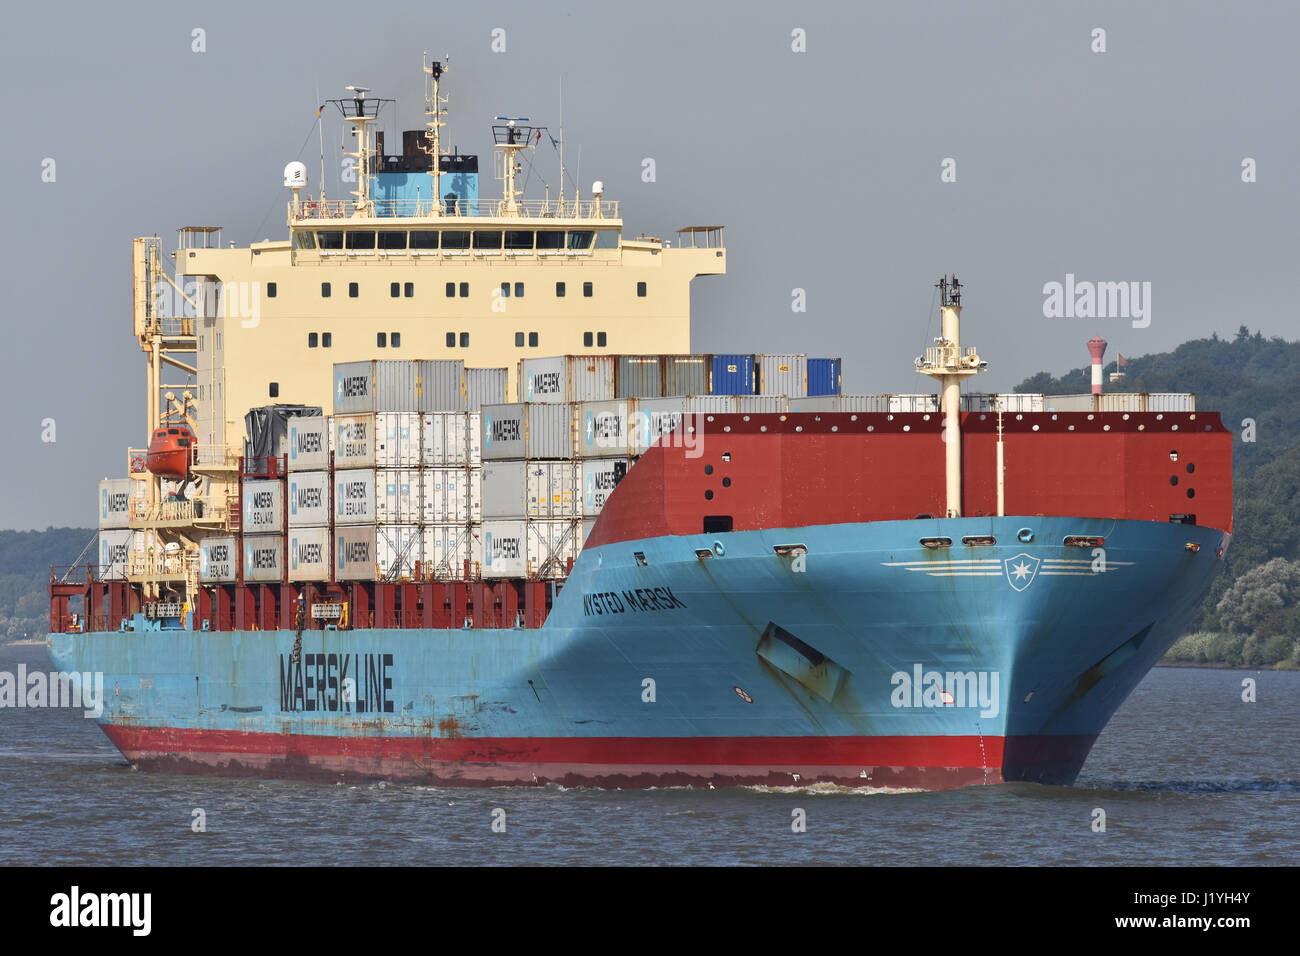 Nysted Maersk Stock Photo